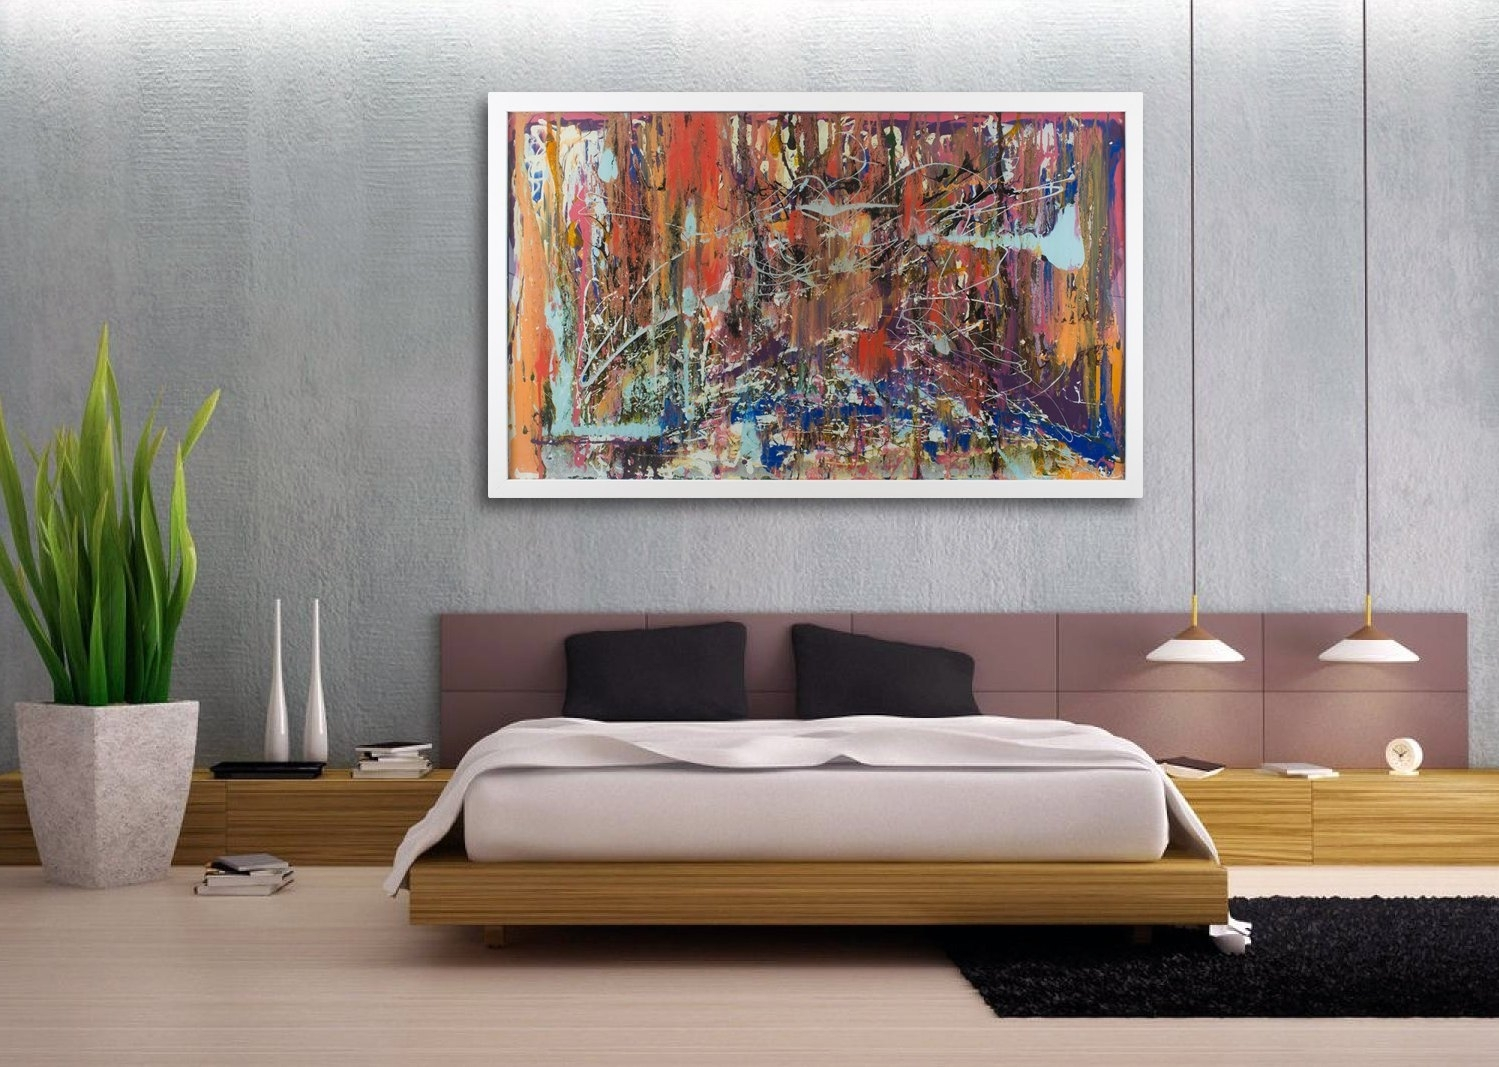 Perky Wall Abstract Canvas Art Wall Abstract Canvas To Dainty with regard to Extra Large Wall Art (Image 16 of 20)